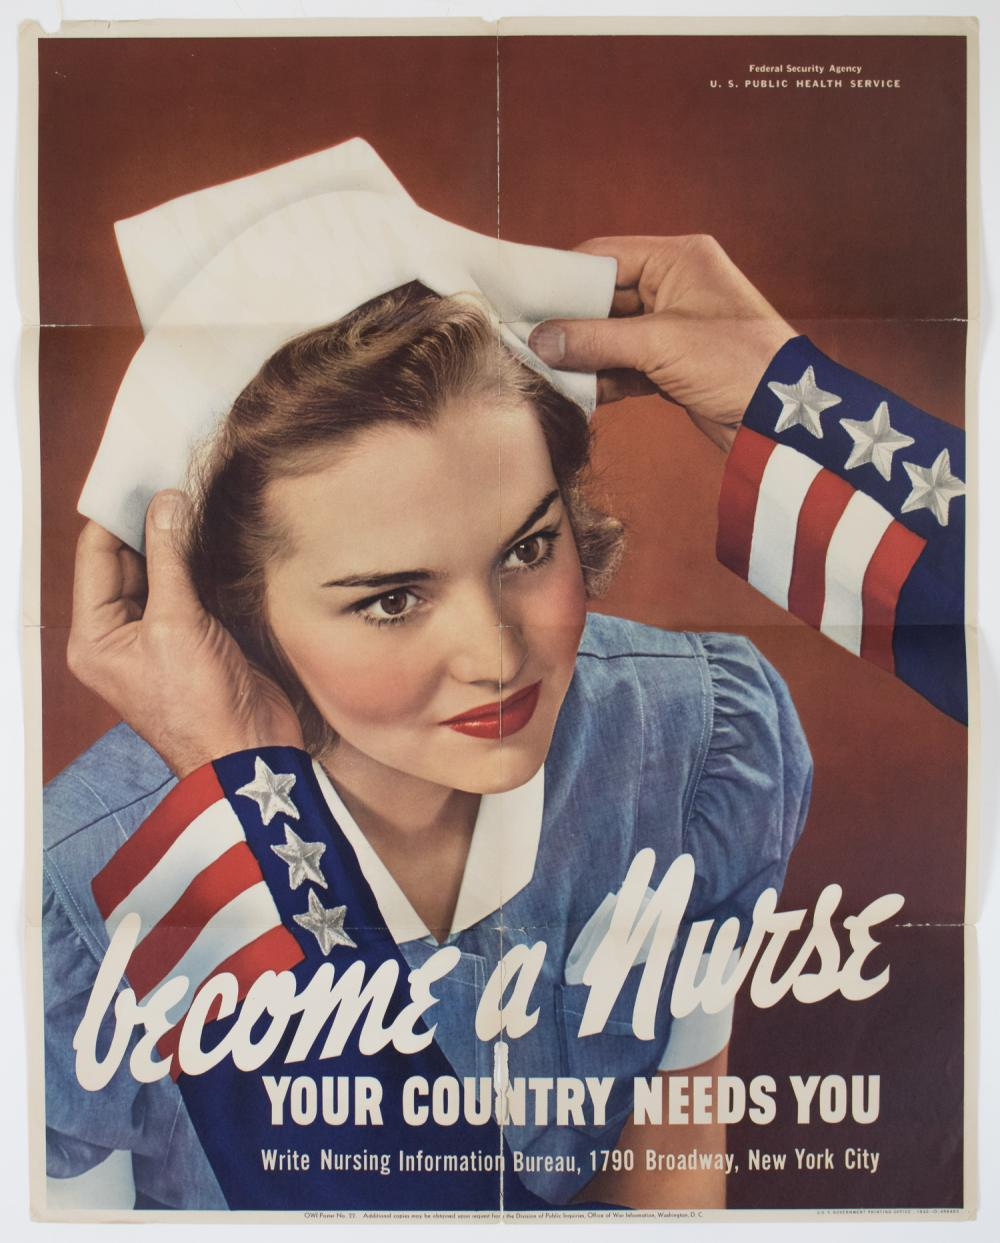 'BECOME A NURSE...YOUR COUNTRY NEEDS YOU'